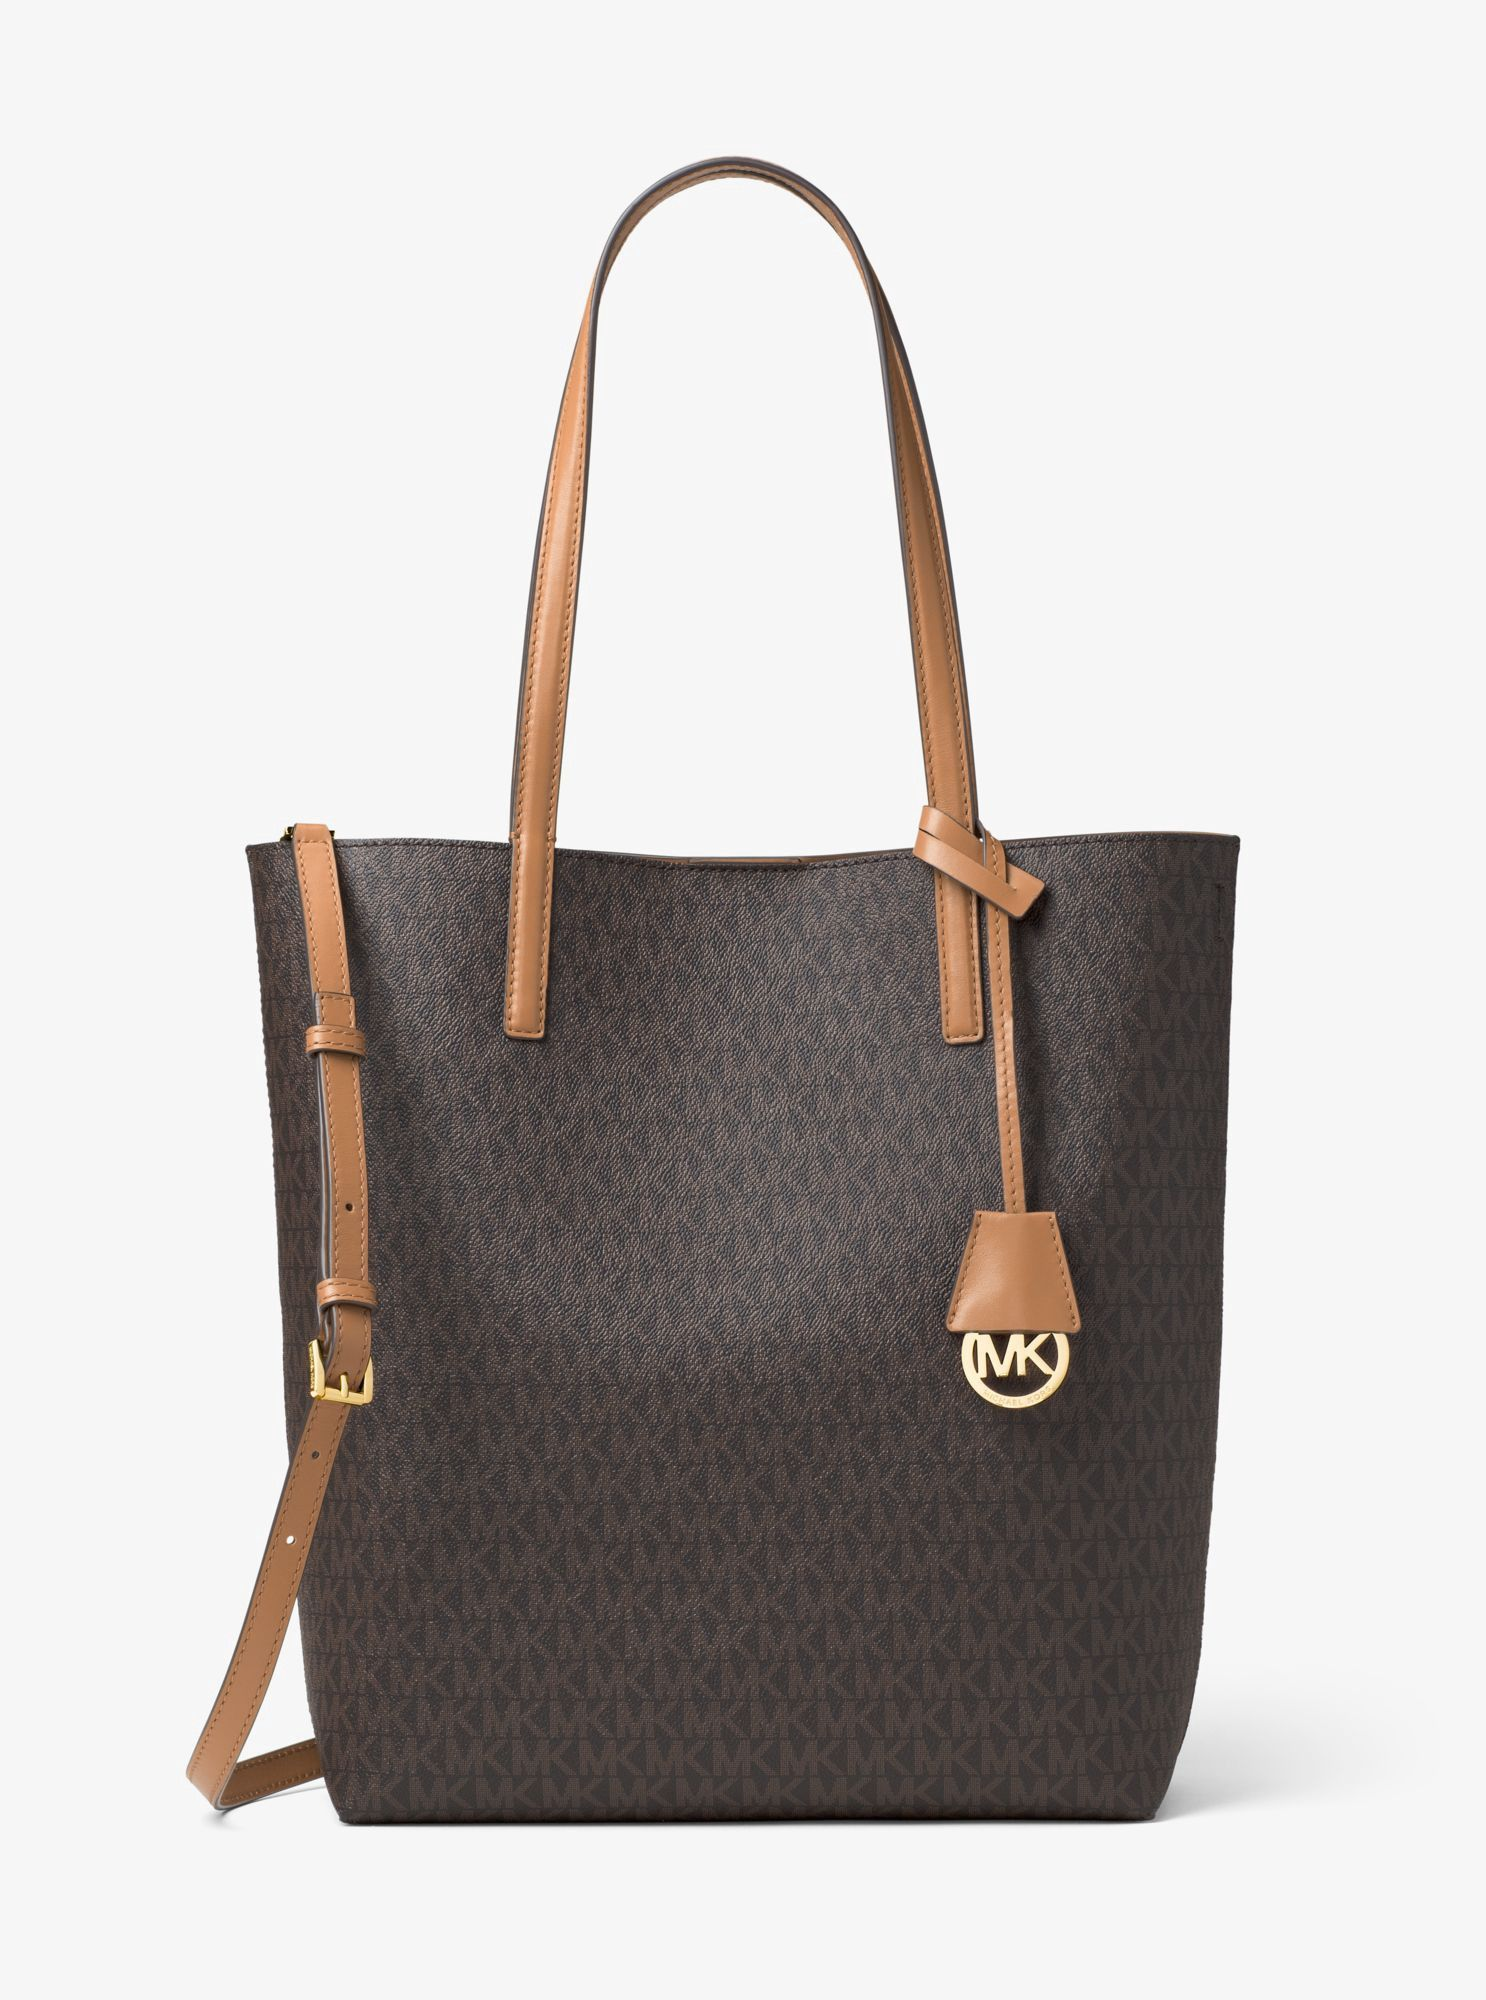 MICHAEL KORS Hayley Large Logo North South Tote